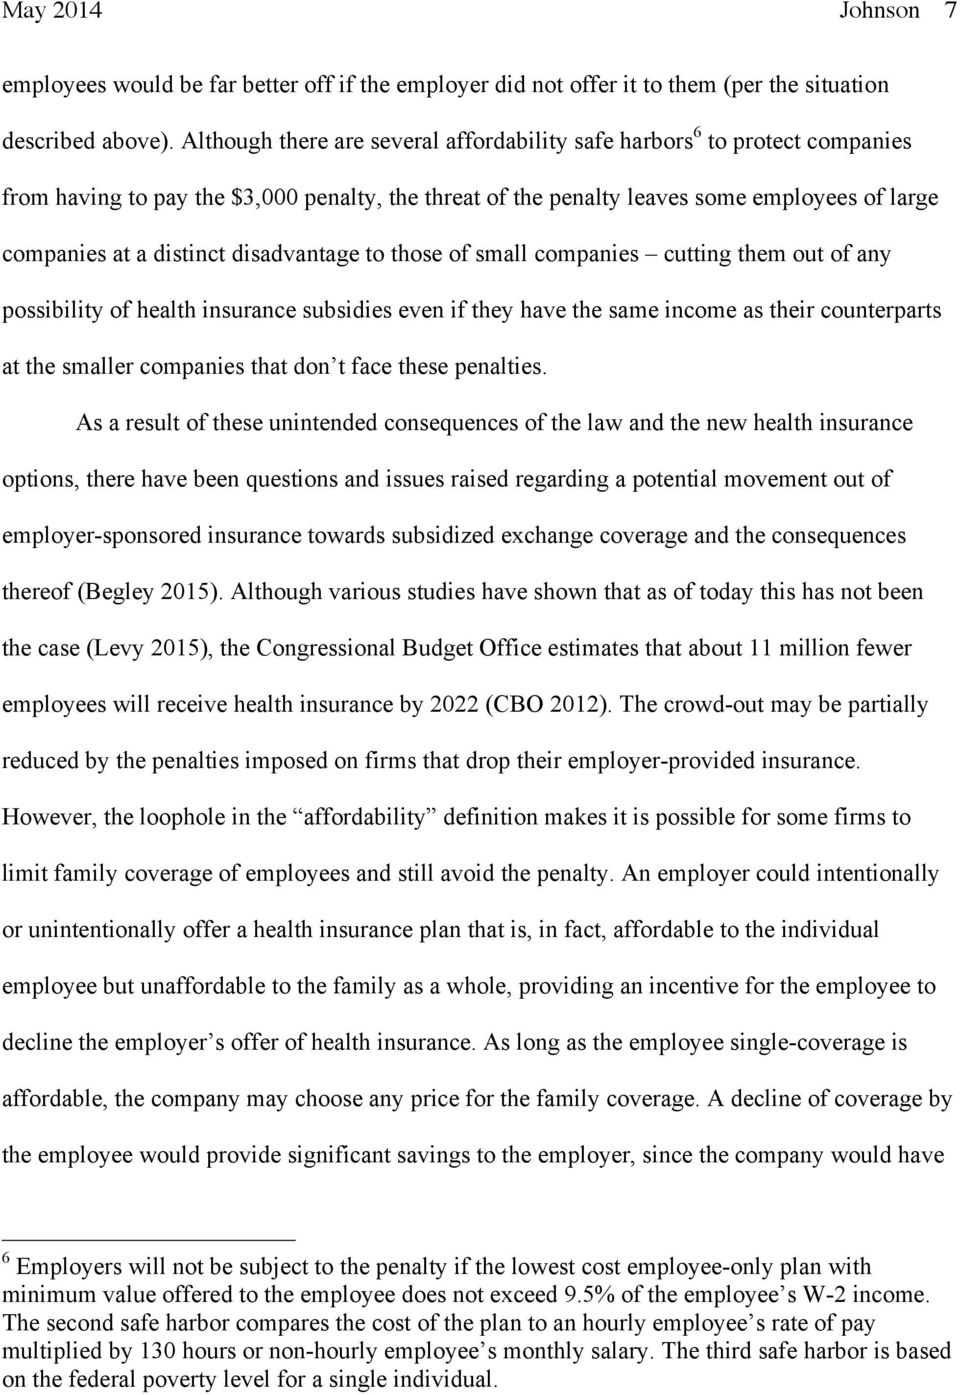 disadvantage to those of small companies cutting them out of any possibility of health insurance subsidies even if they have the same income as their counterparts at the smaller companies that don t